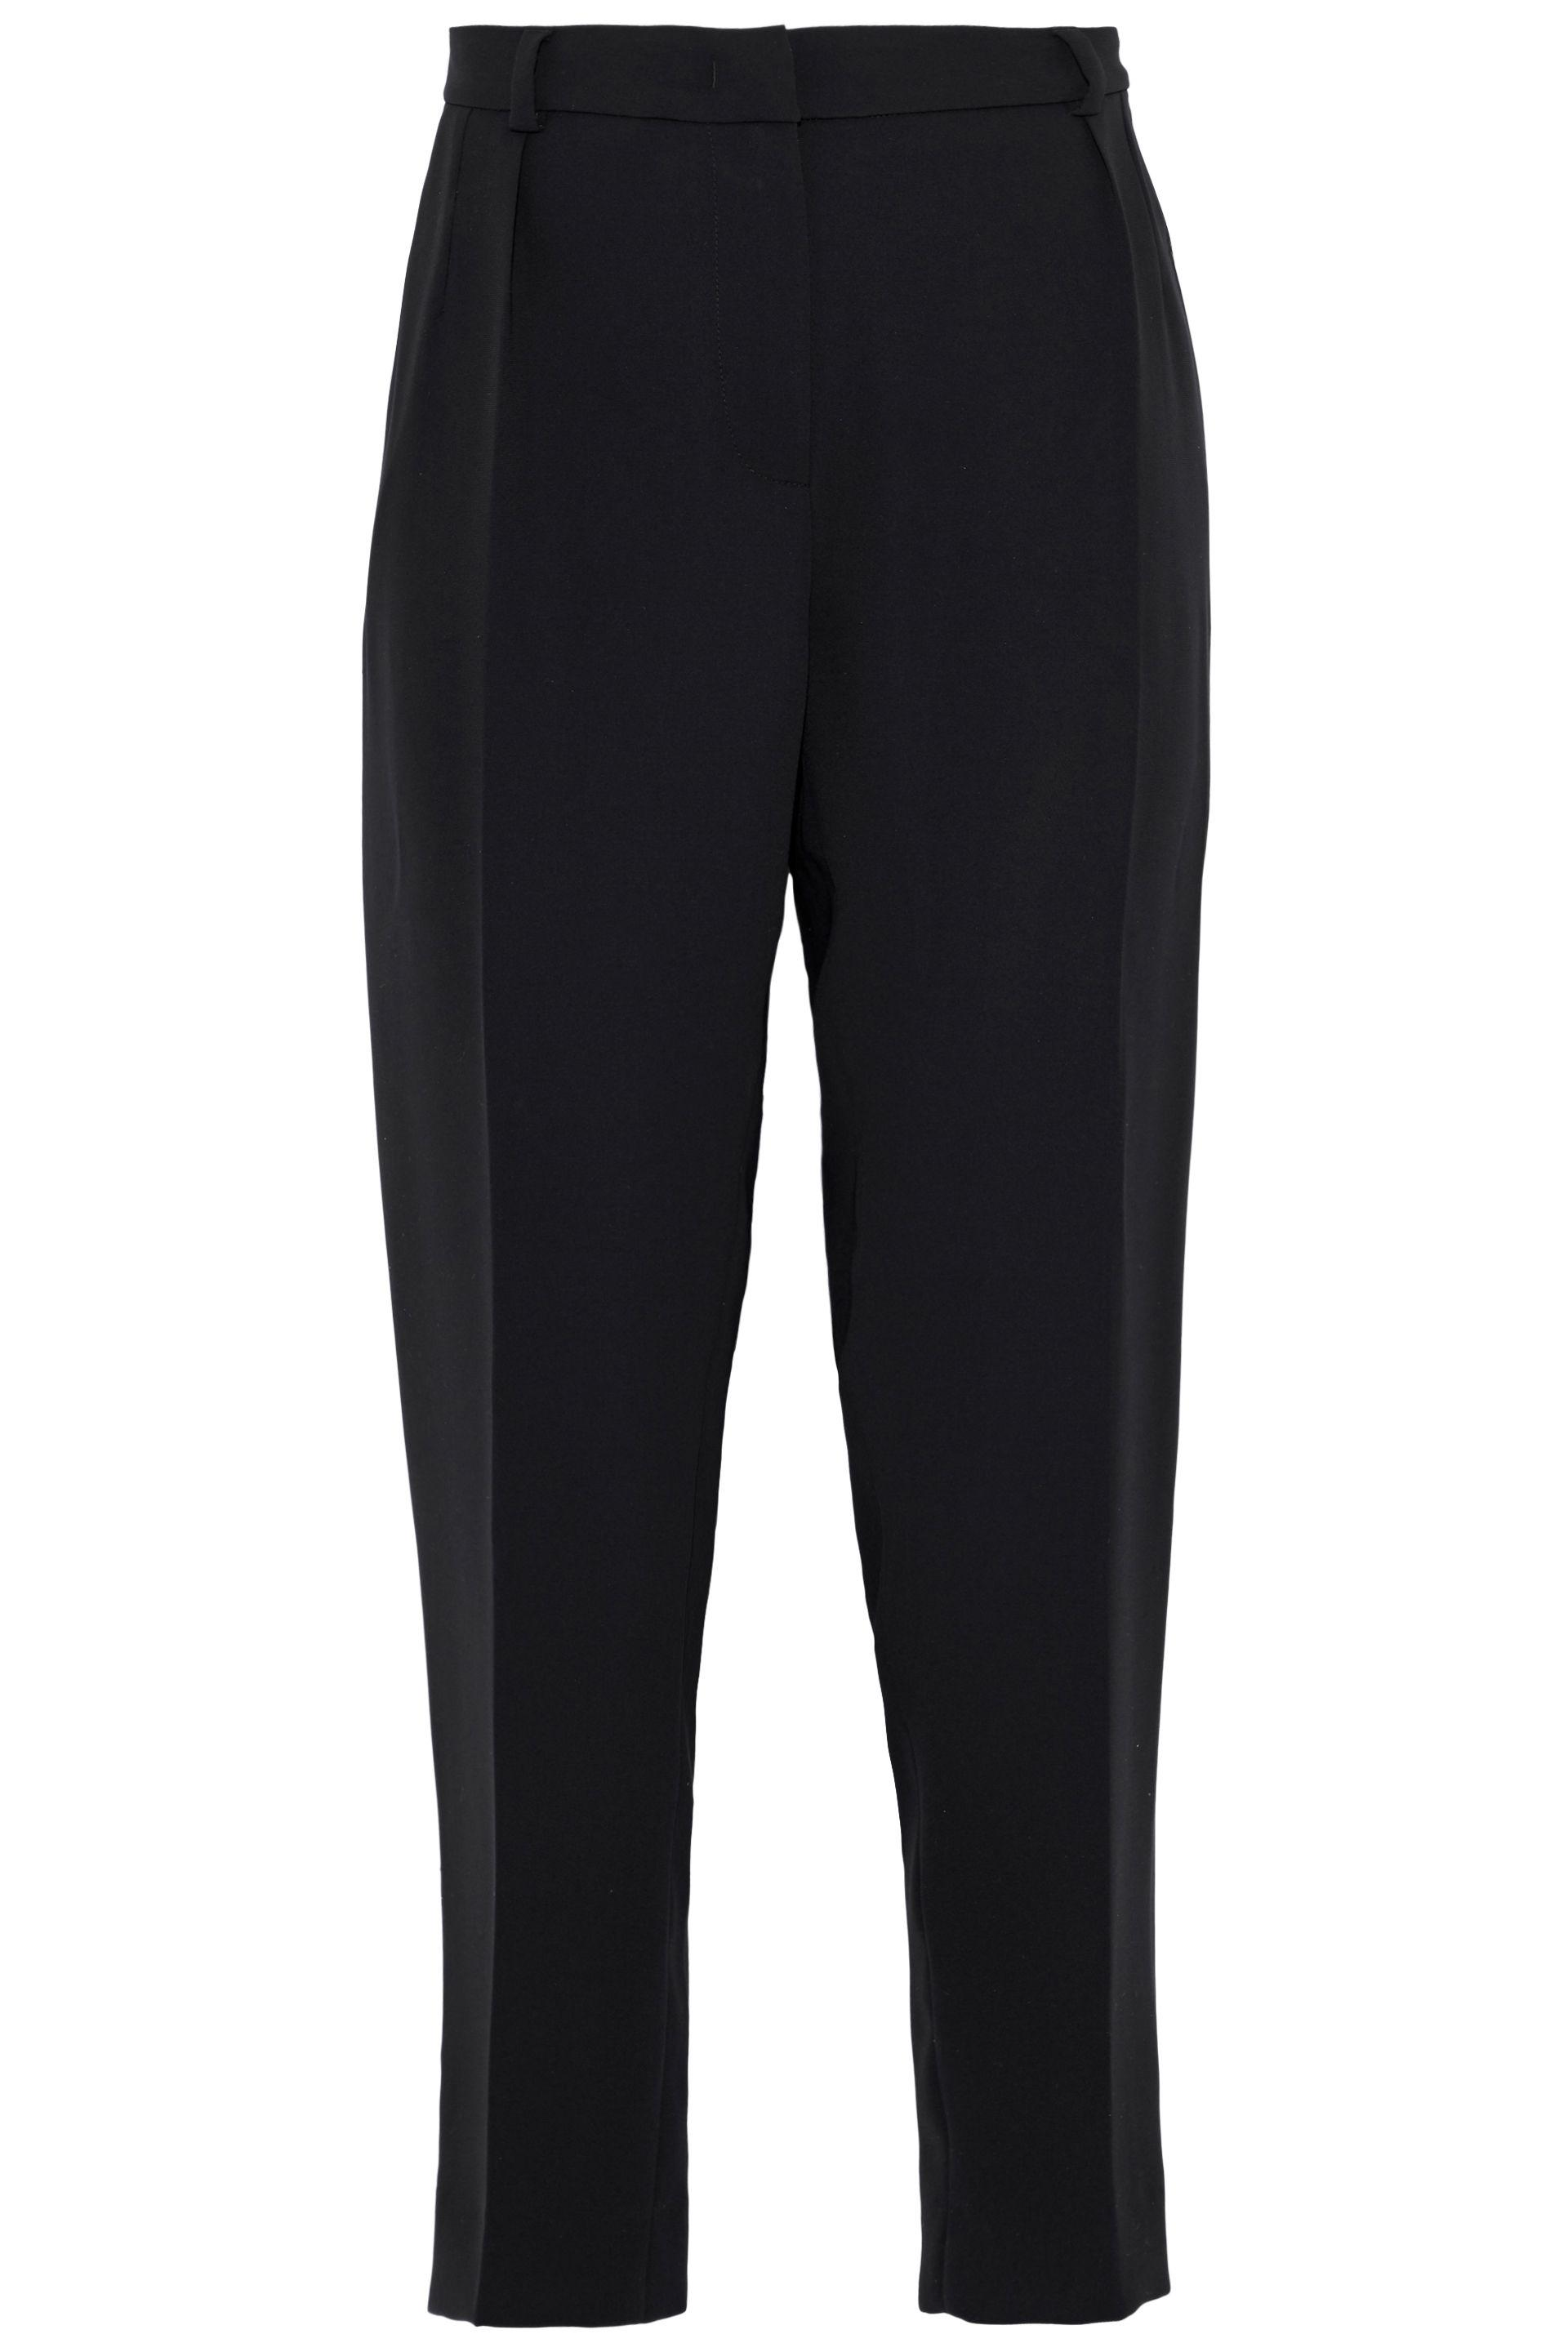 Gelly cropped trousers - Black Max Mara